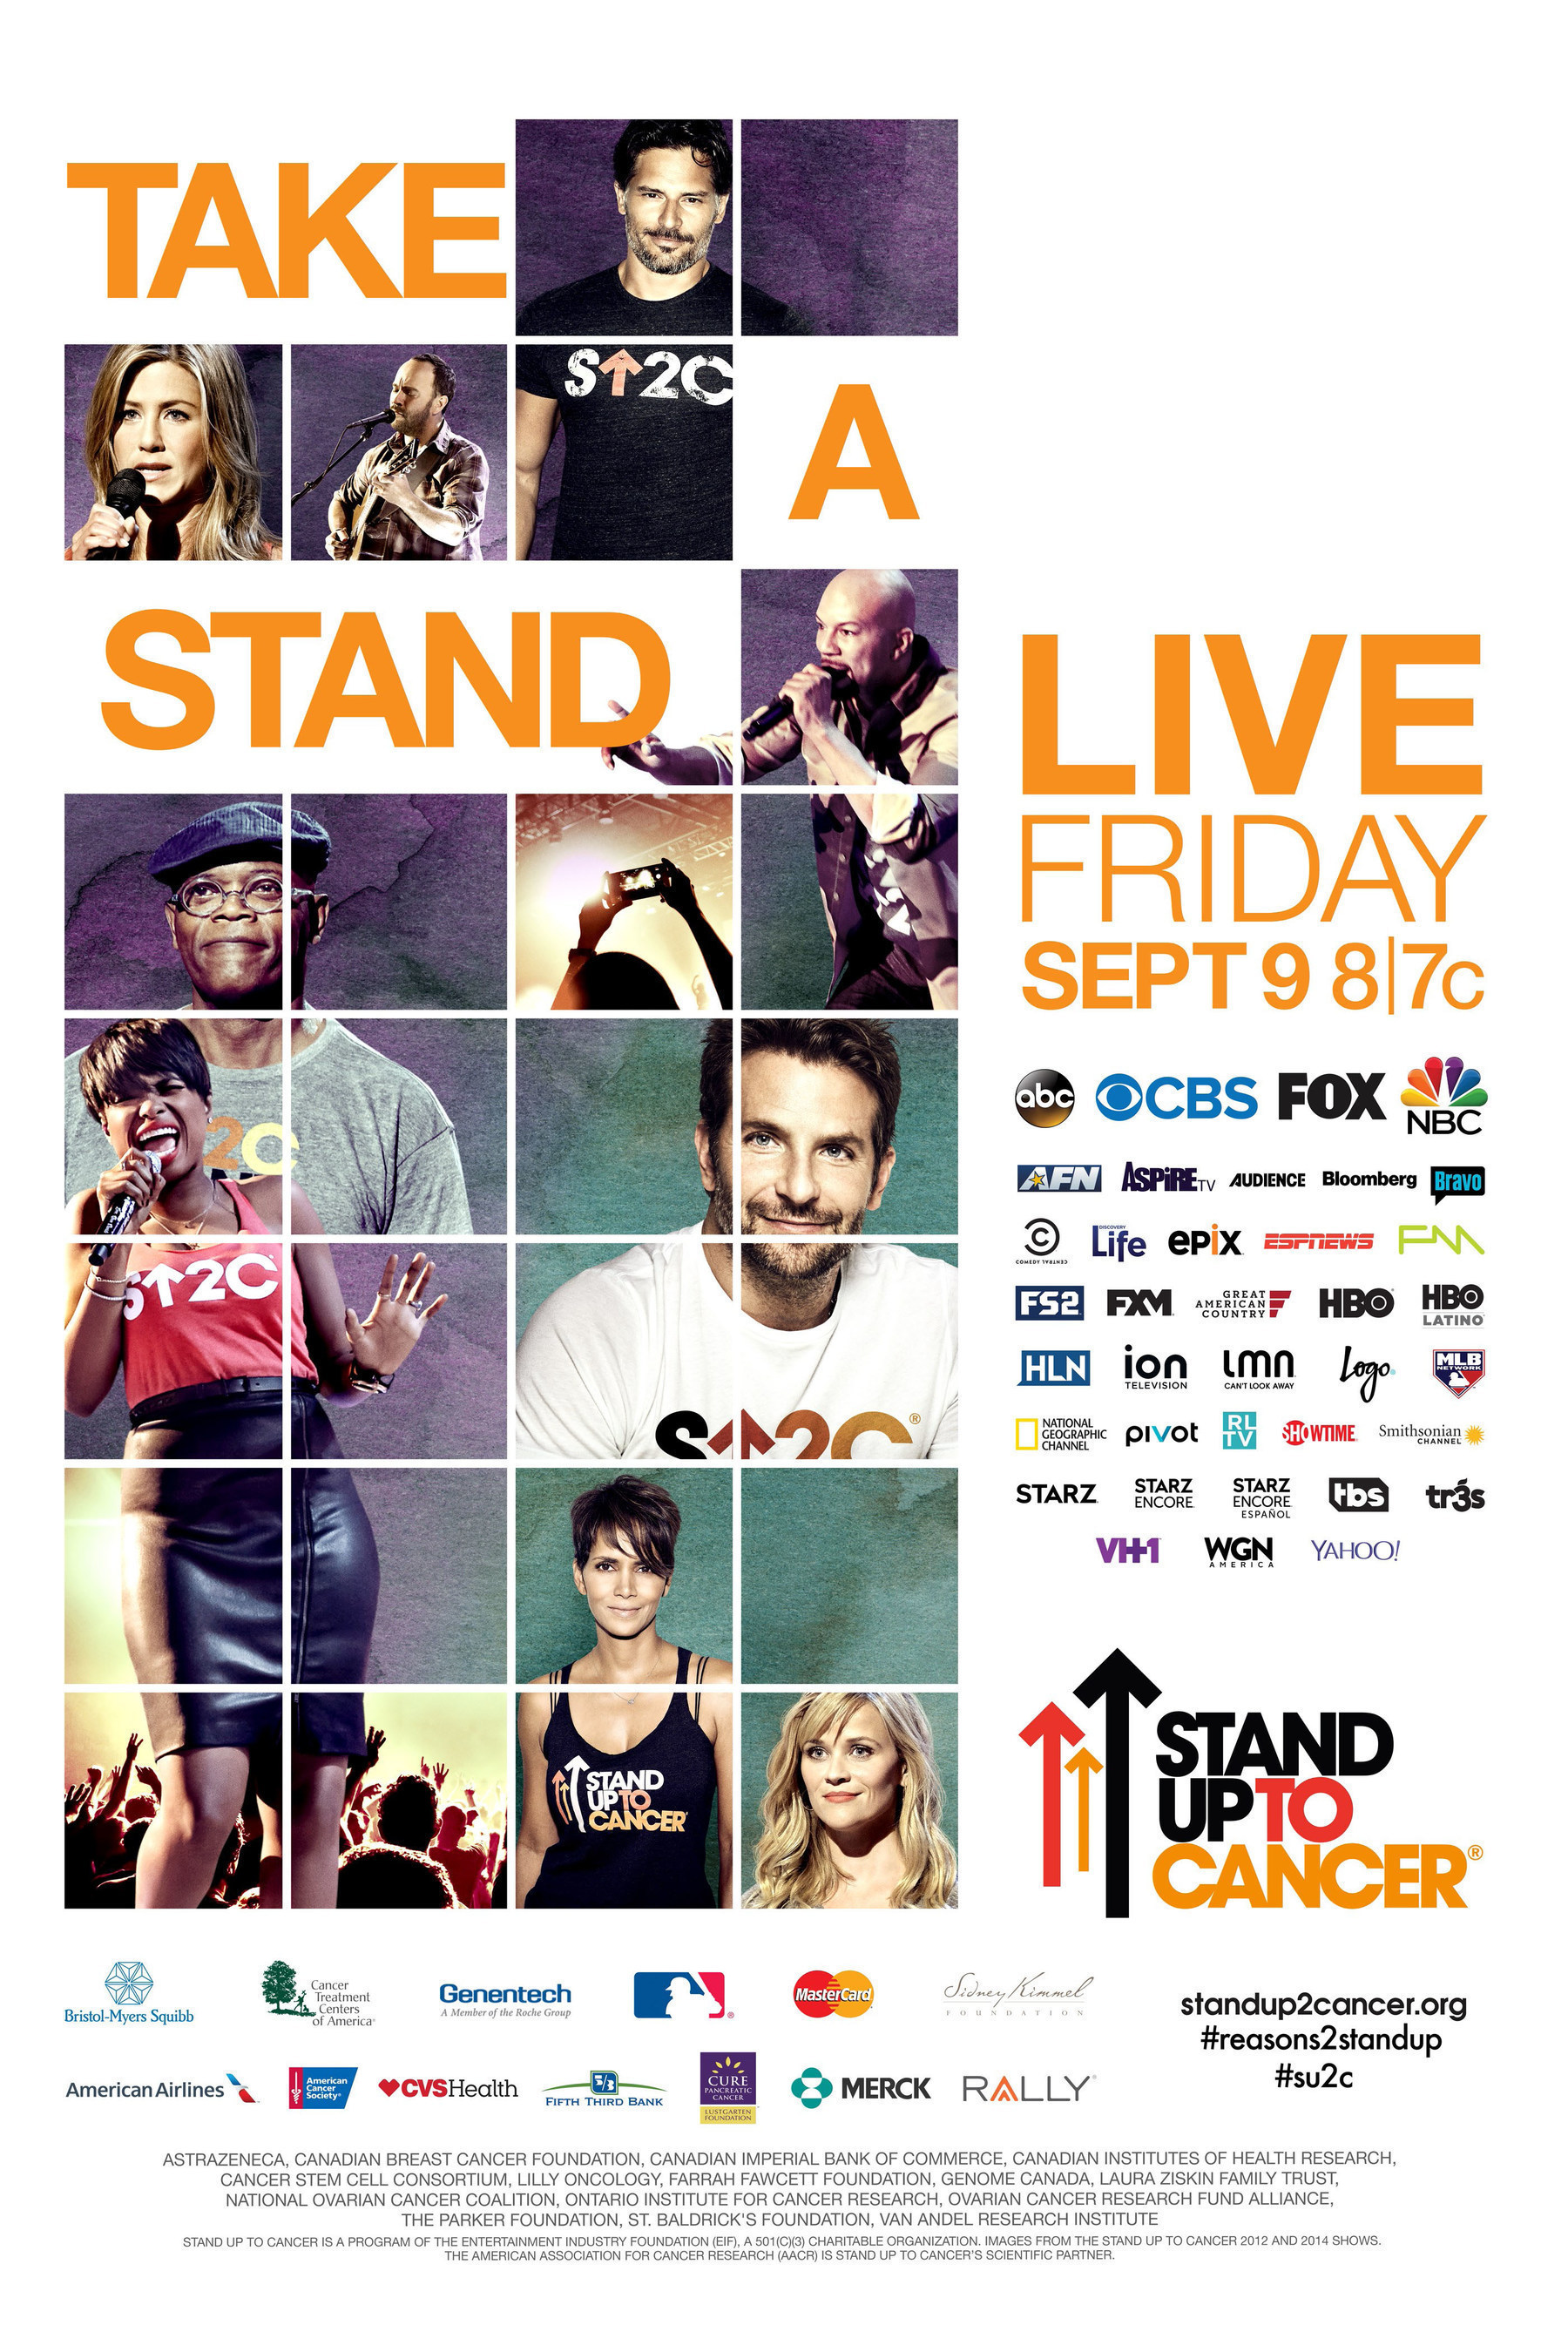 Stand Up To Cancer Returns For Fifth Live Roadblock Telecast 'Friday, September 9 Bradley Cooper To Executive-Produce With Award-Winning Team At Done + Dusted